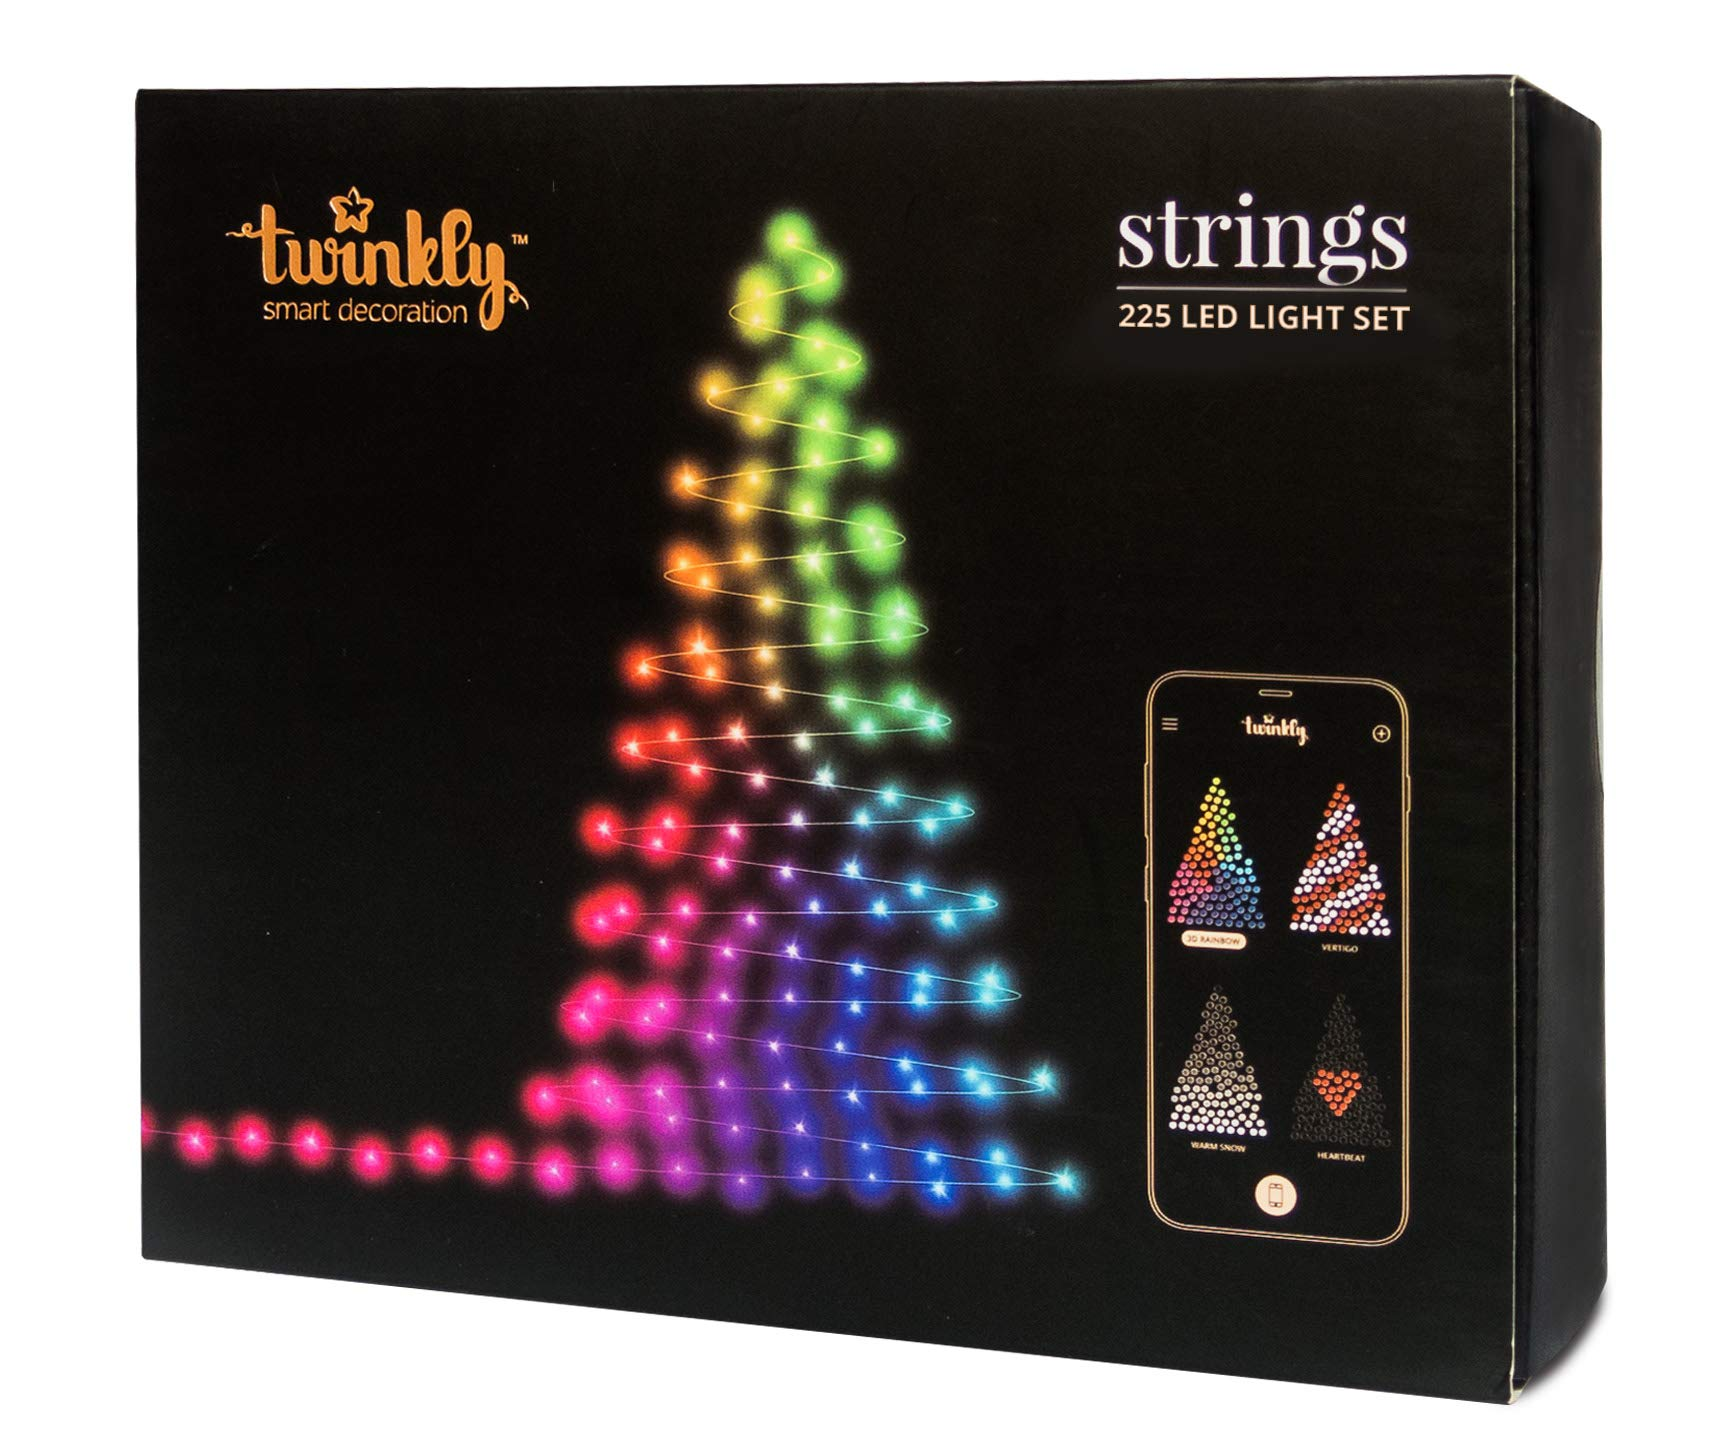 Twinkly 225 LED String Lights